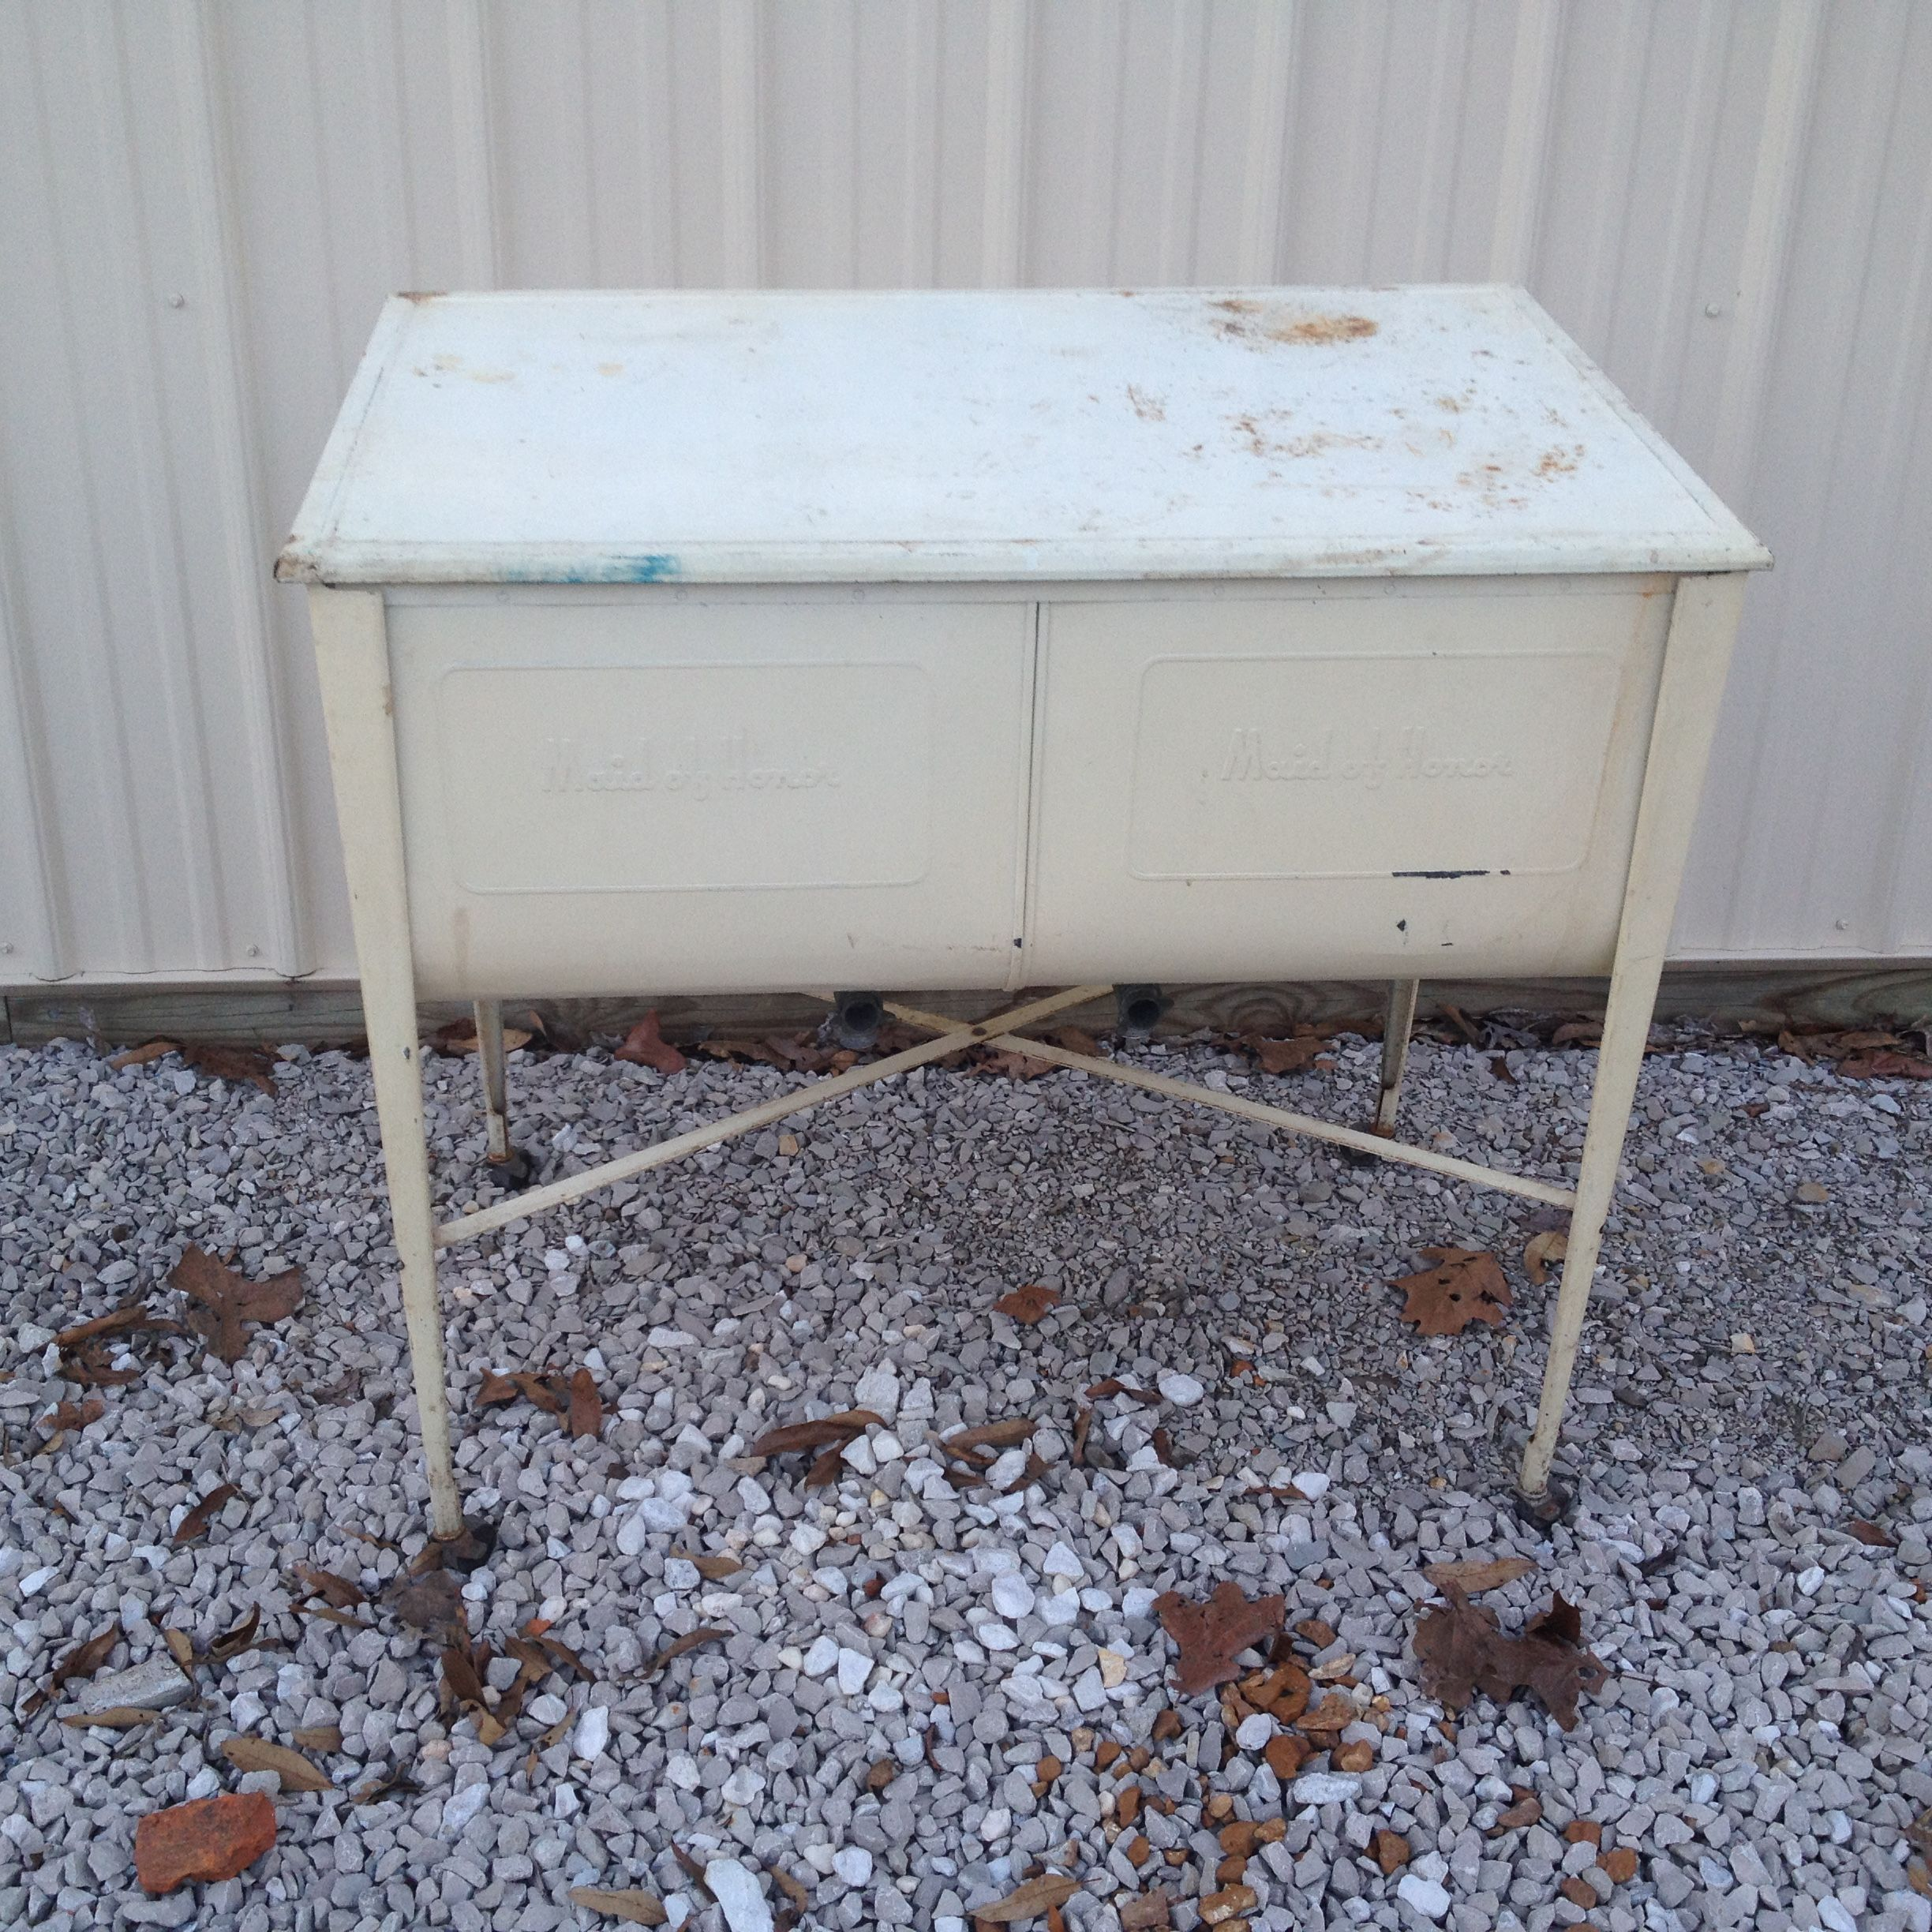 Vintage Primitive Maid Of Honor White Double Wash Tub Wheels Lid Galvanized Wash Tubs Vintage Eclectic Tub